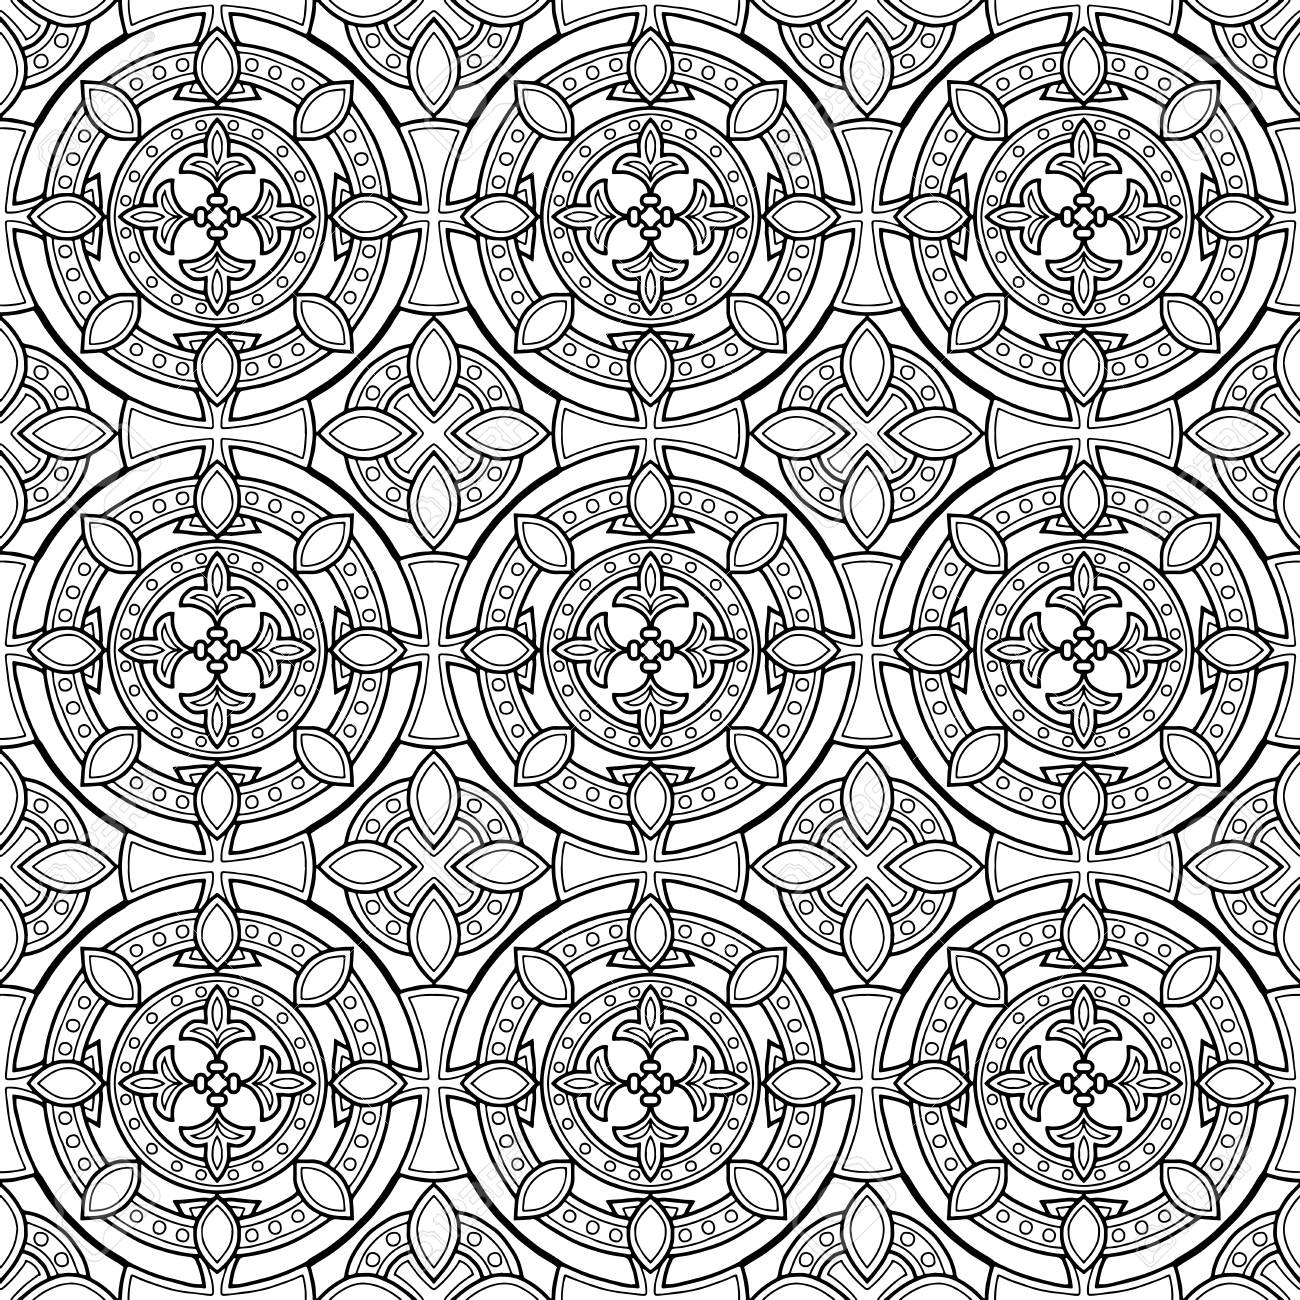 Abstract patterns cross doodles sketch banque dimages 104849656